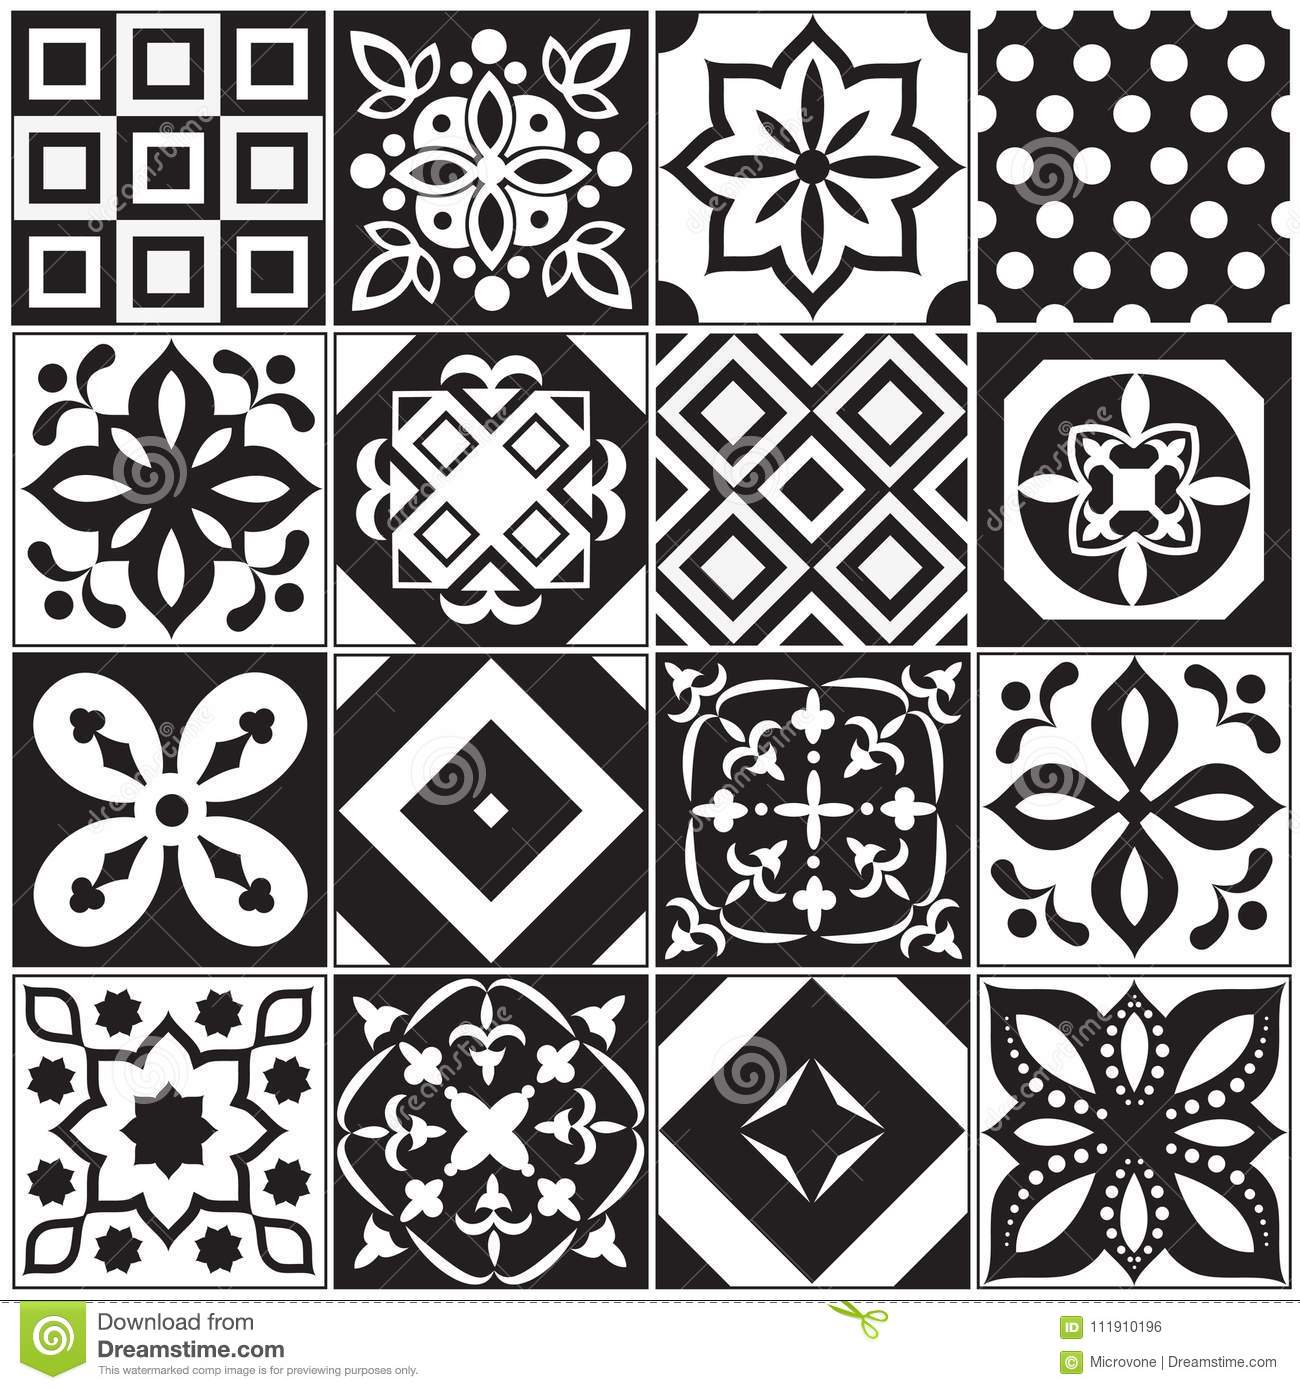 Vintage Black And White Traditional Ceramic Floor Tile Patterns